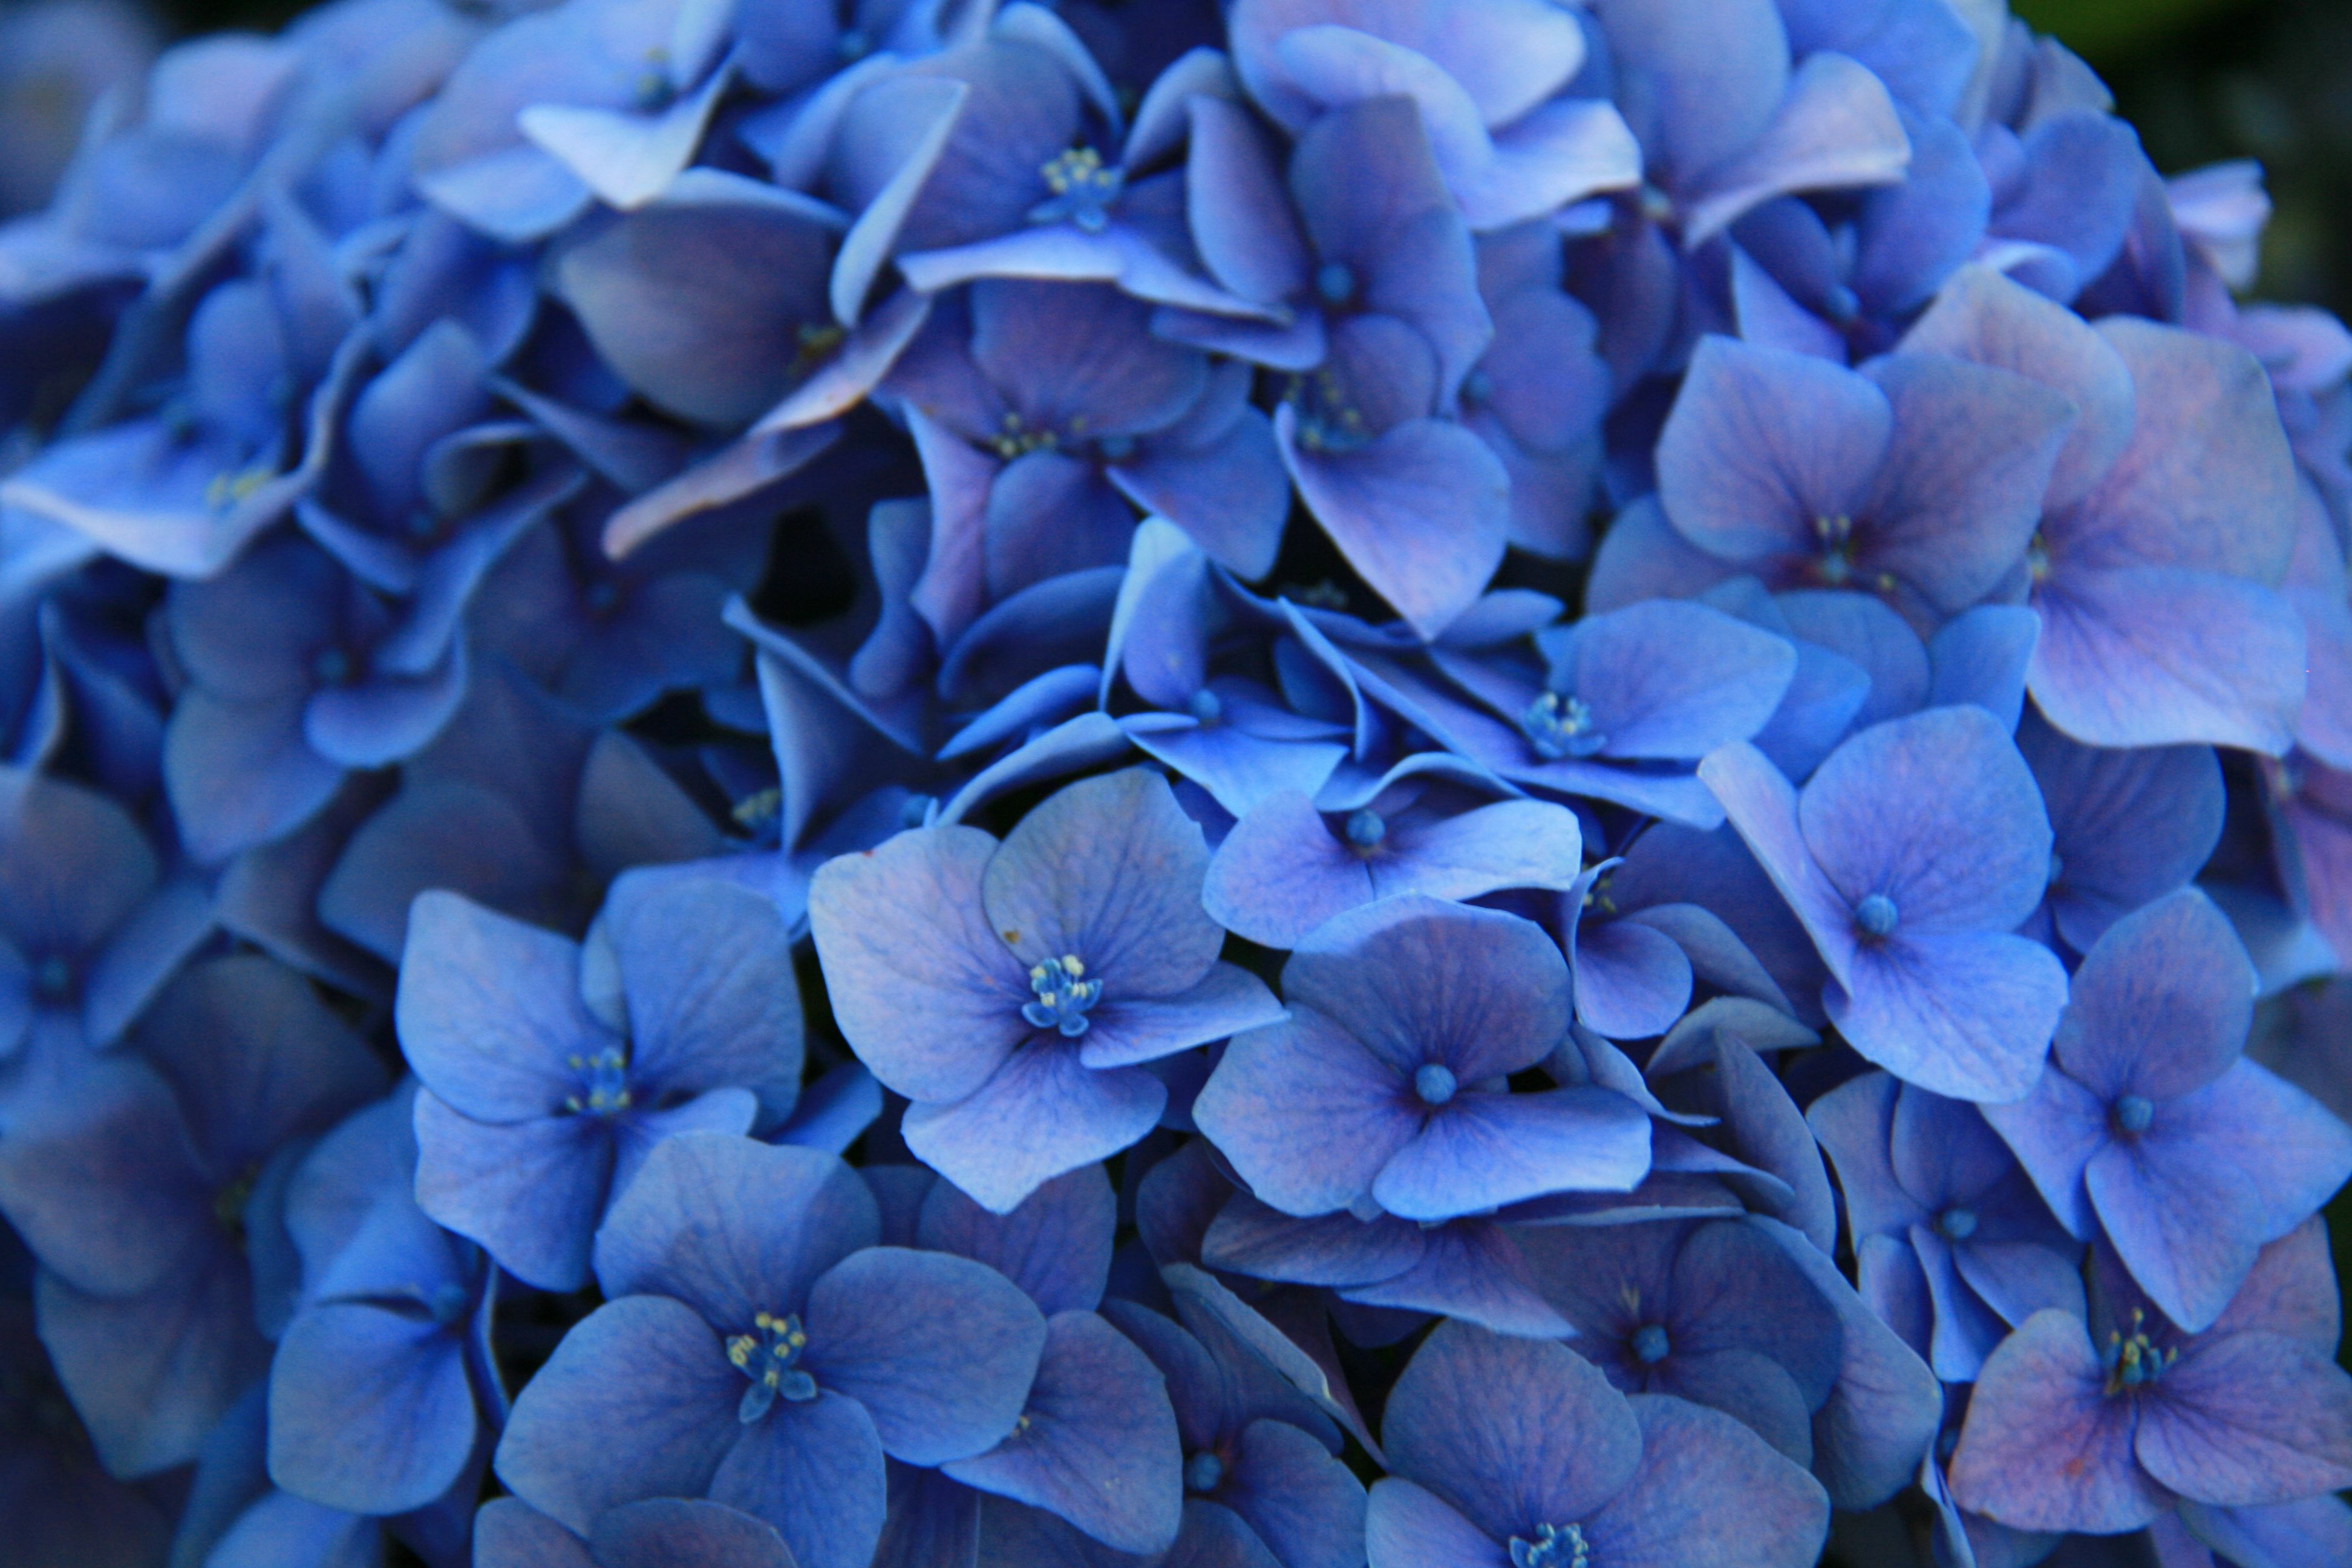 Desktop Wallpaper Blue Flowers Images 6 Hd Wallpapers Walhill